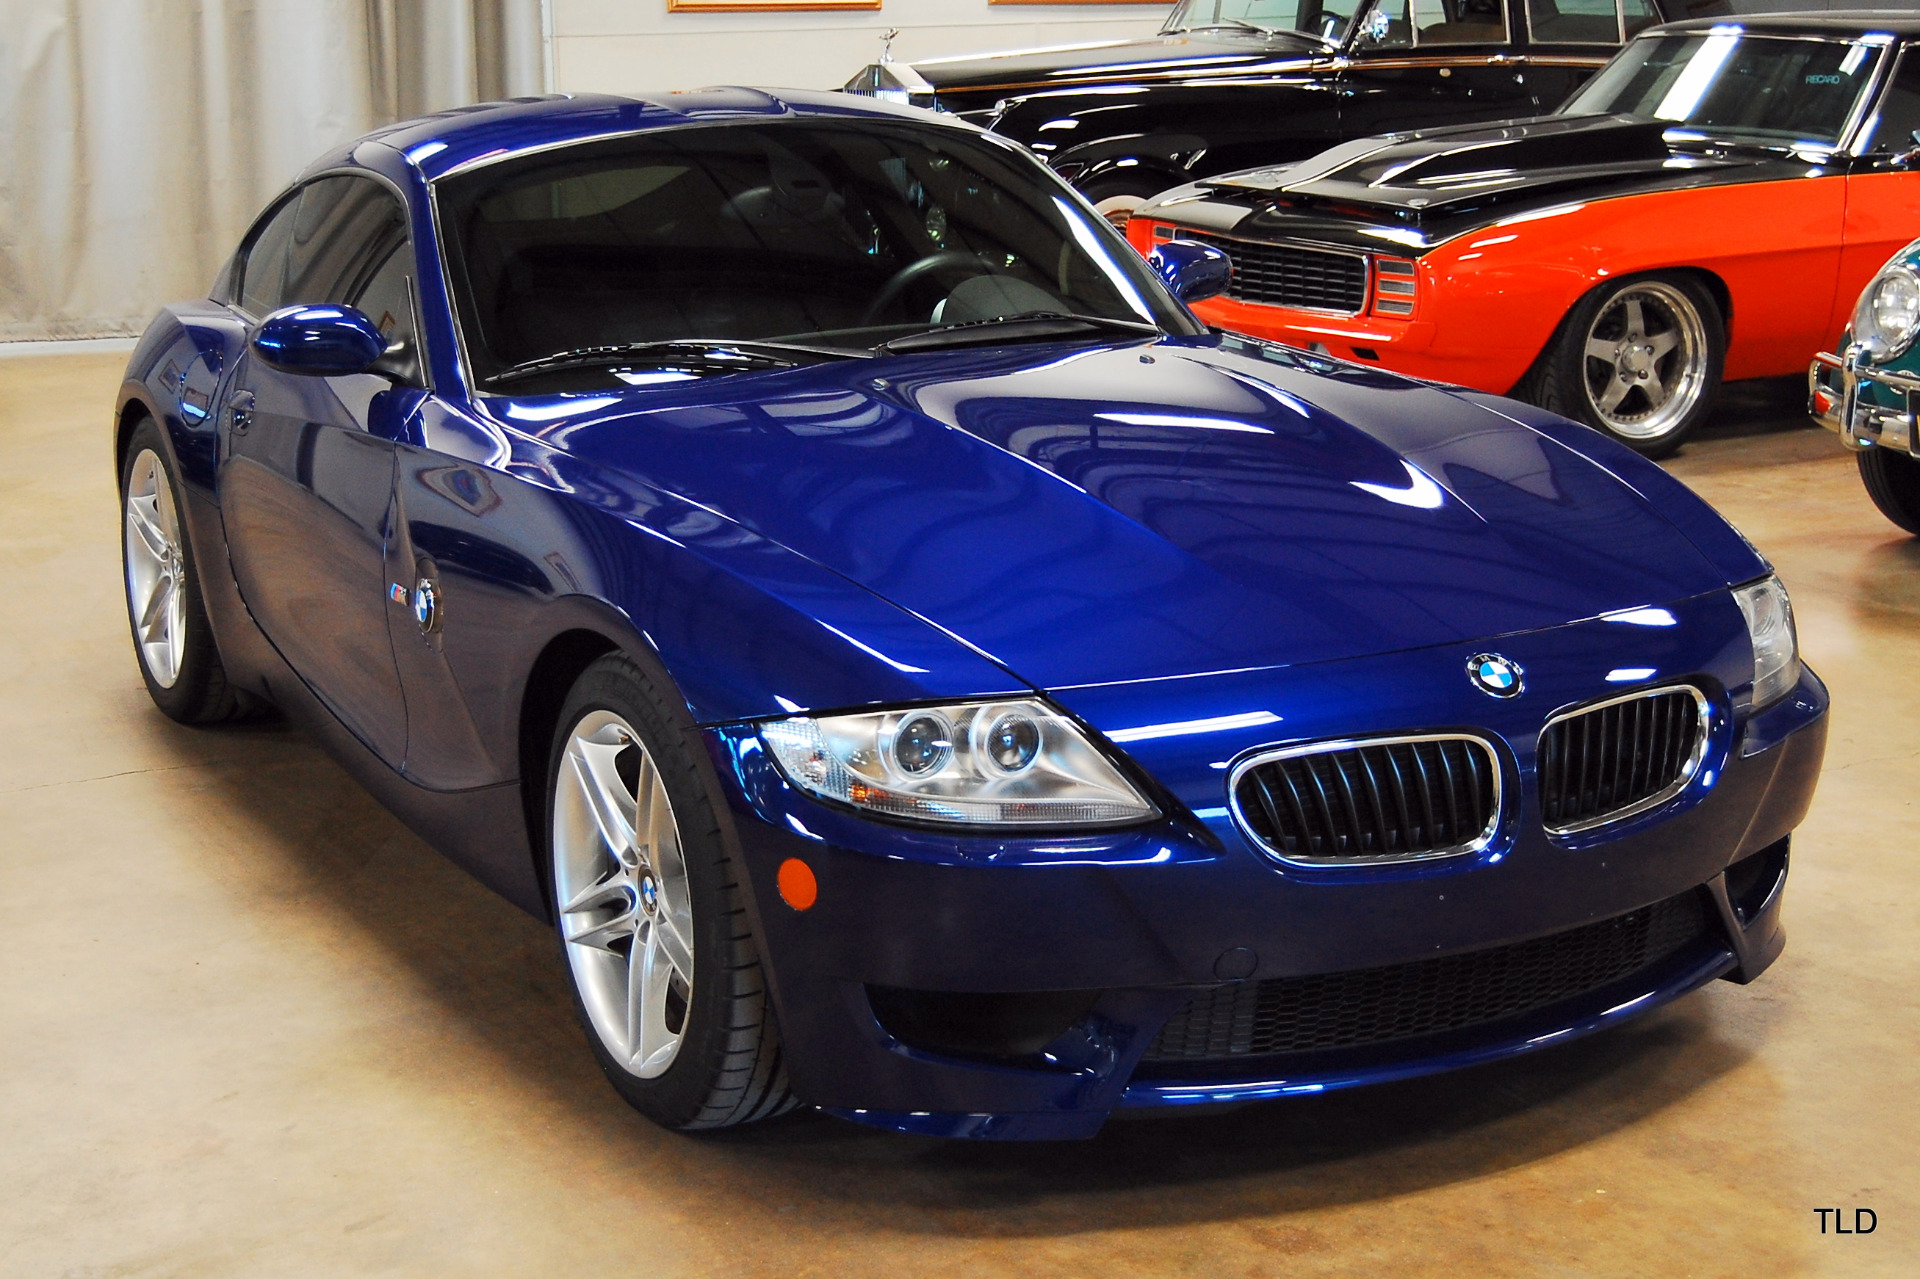 2006 bmw z4 m coupe rh thelastdetail com AASHTO Bridge Inspection Manual NPDES Compliance Inspection Manual